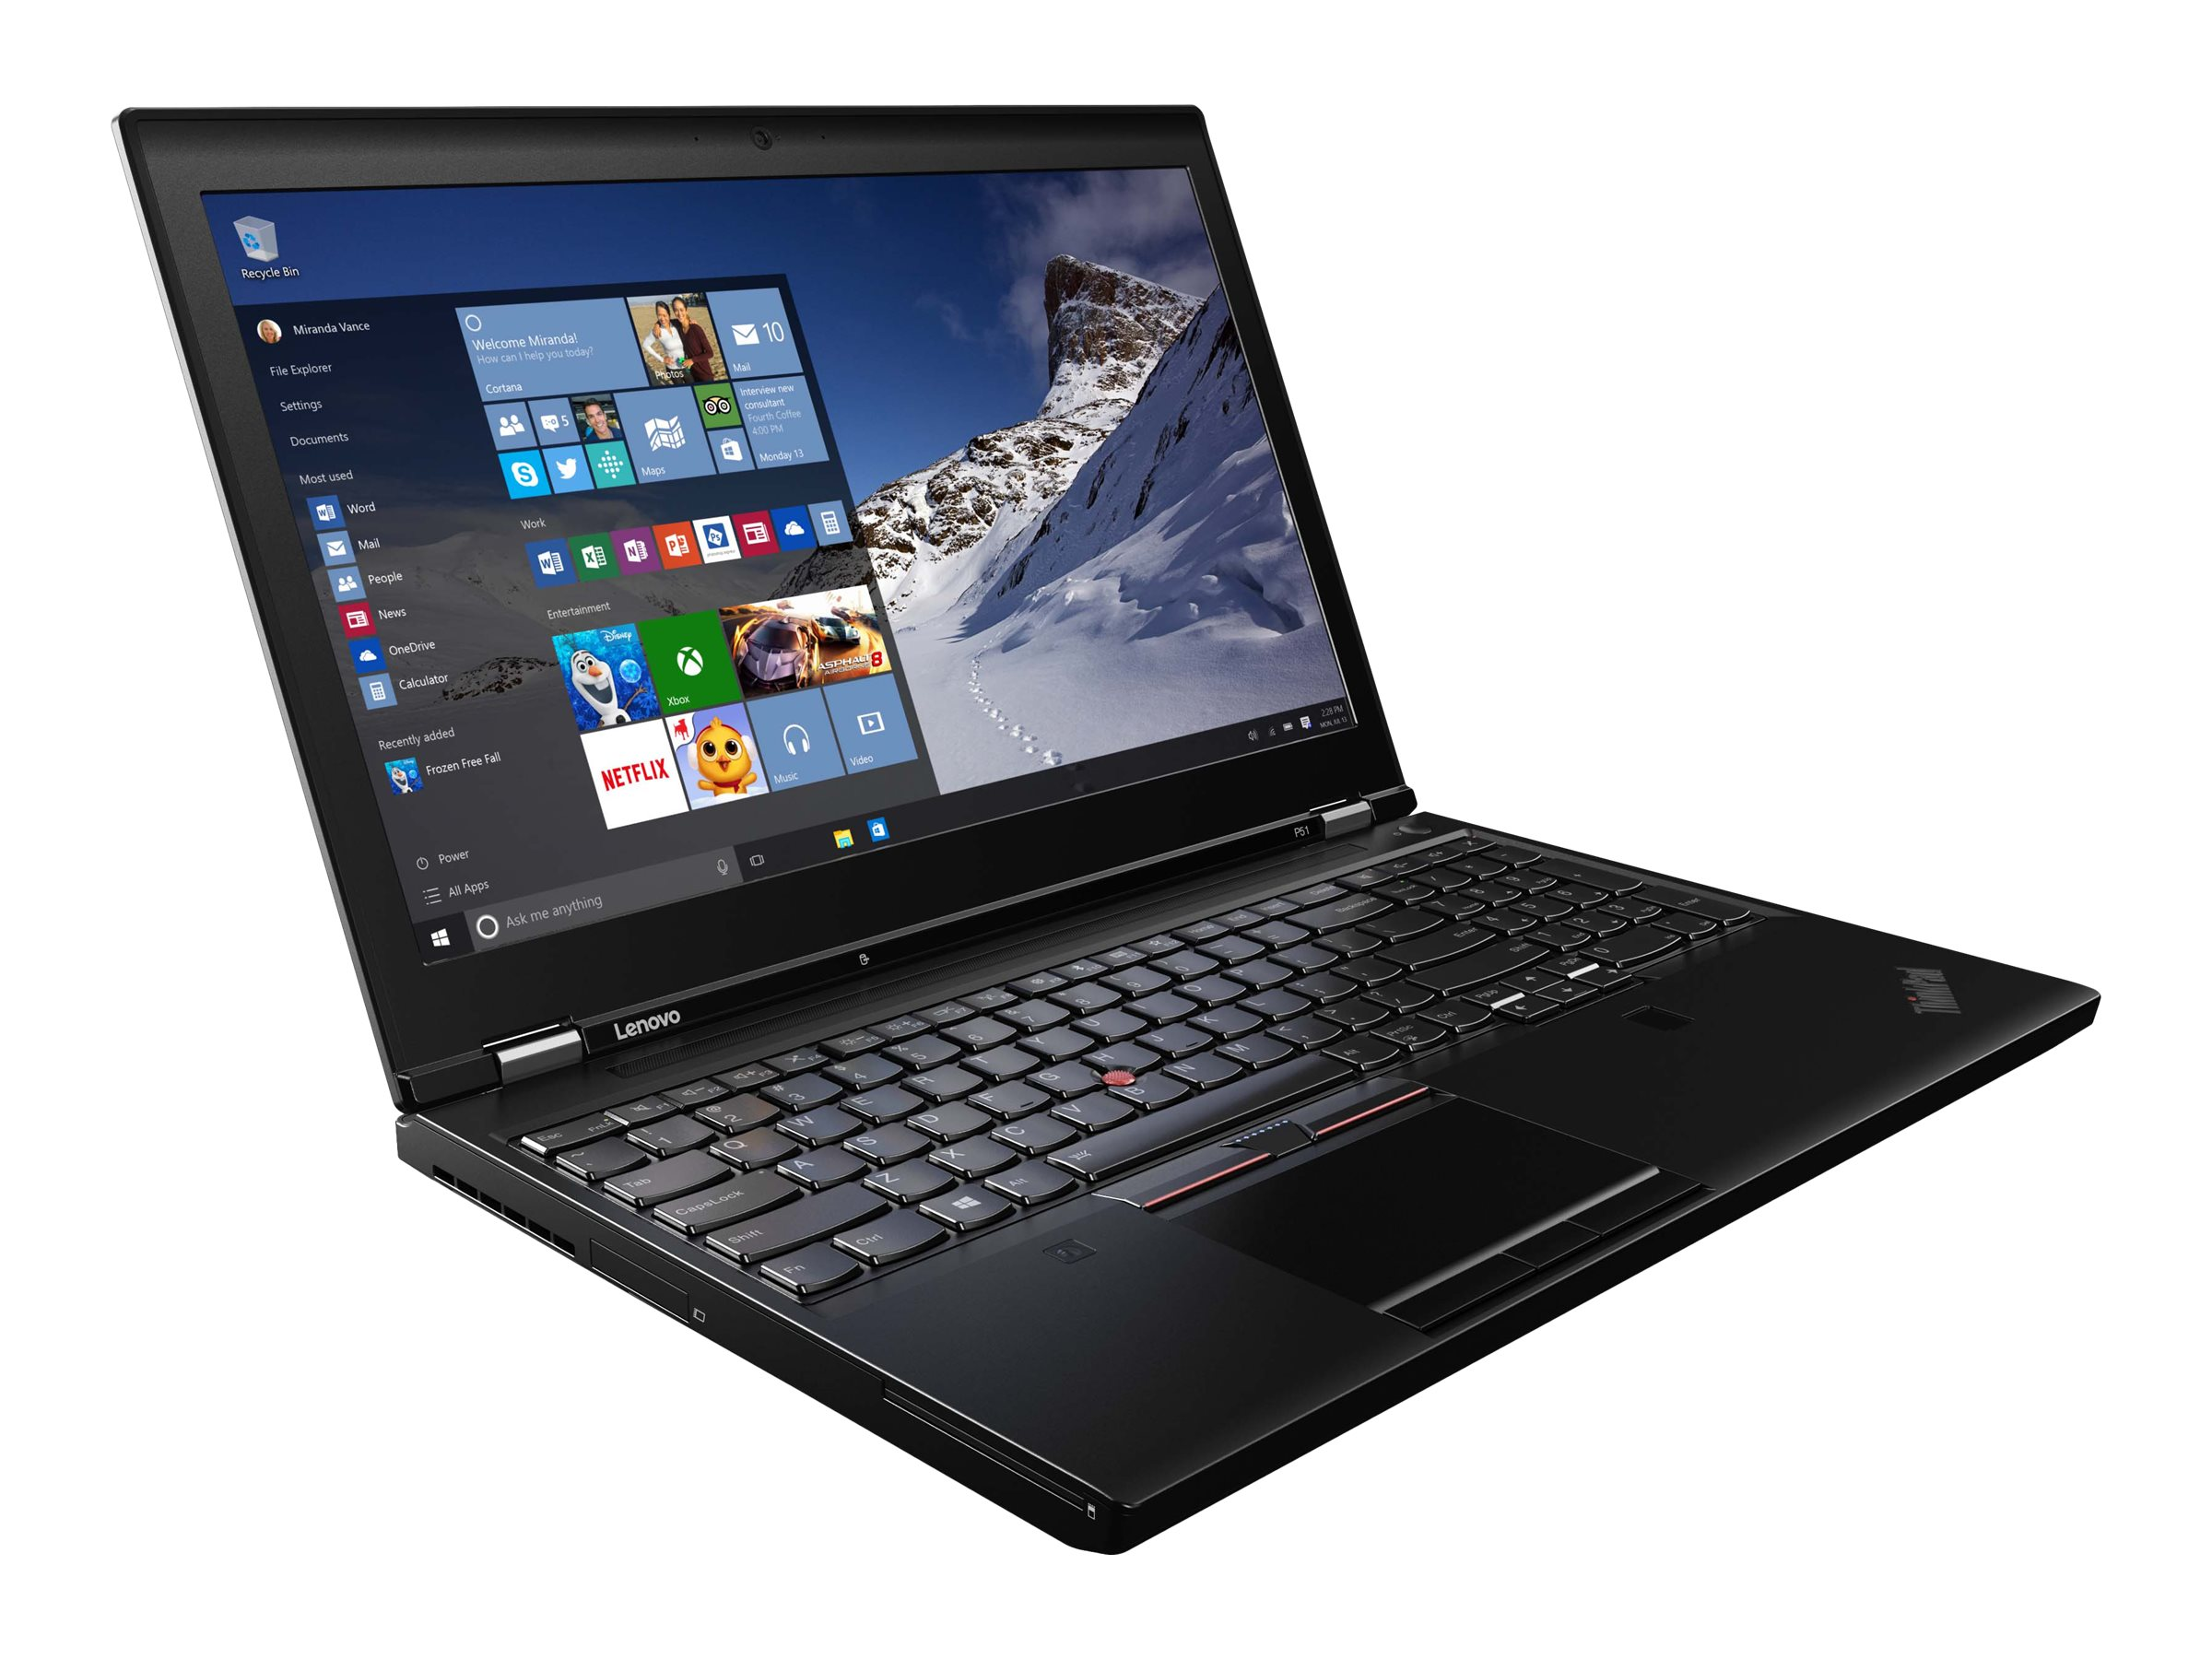 Lenovo TopSeller ThinkPad P51 Core i7-7820HQ 2.9GHz 8GB 512GB PCIe ac BT FR XR M2200M 15.6 FHD MT W10P64